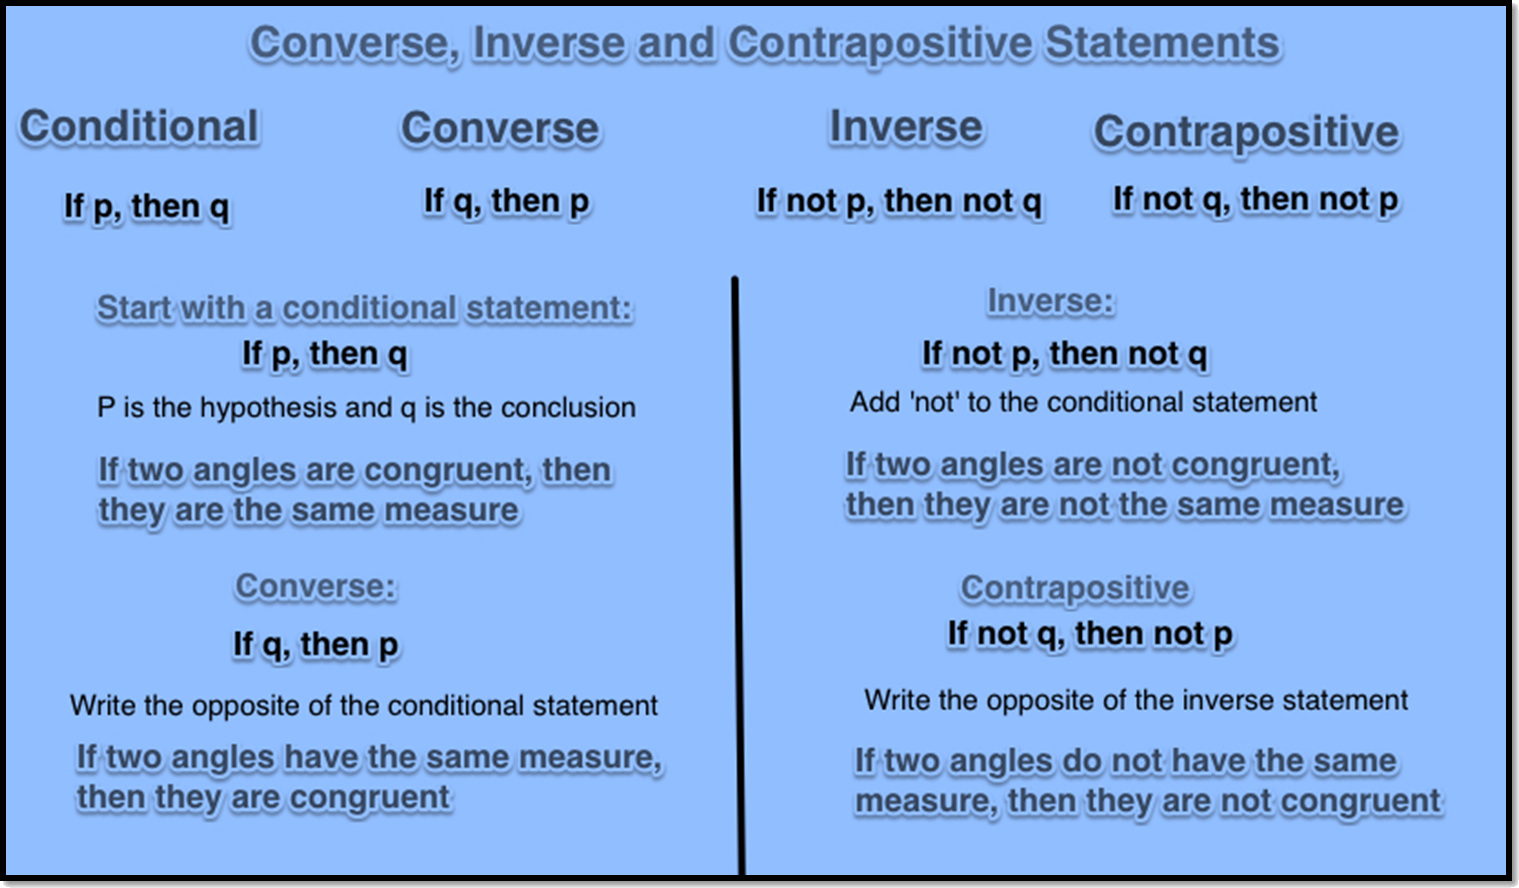 Converse, Inverse and Contrapositive Statements are shown.